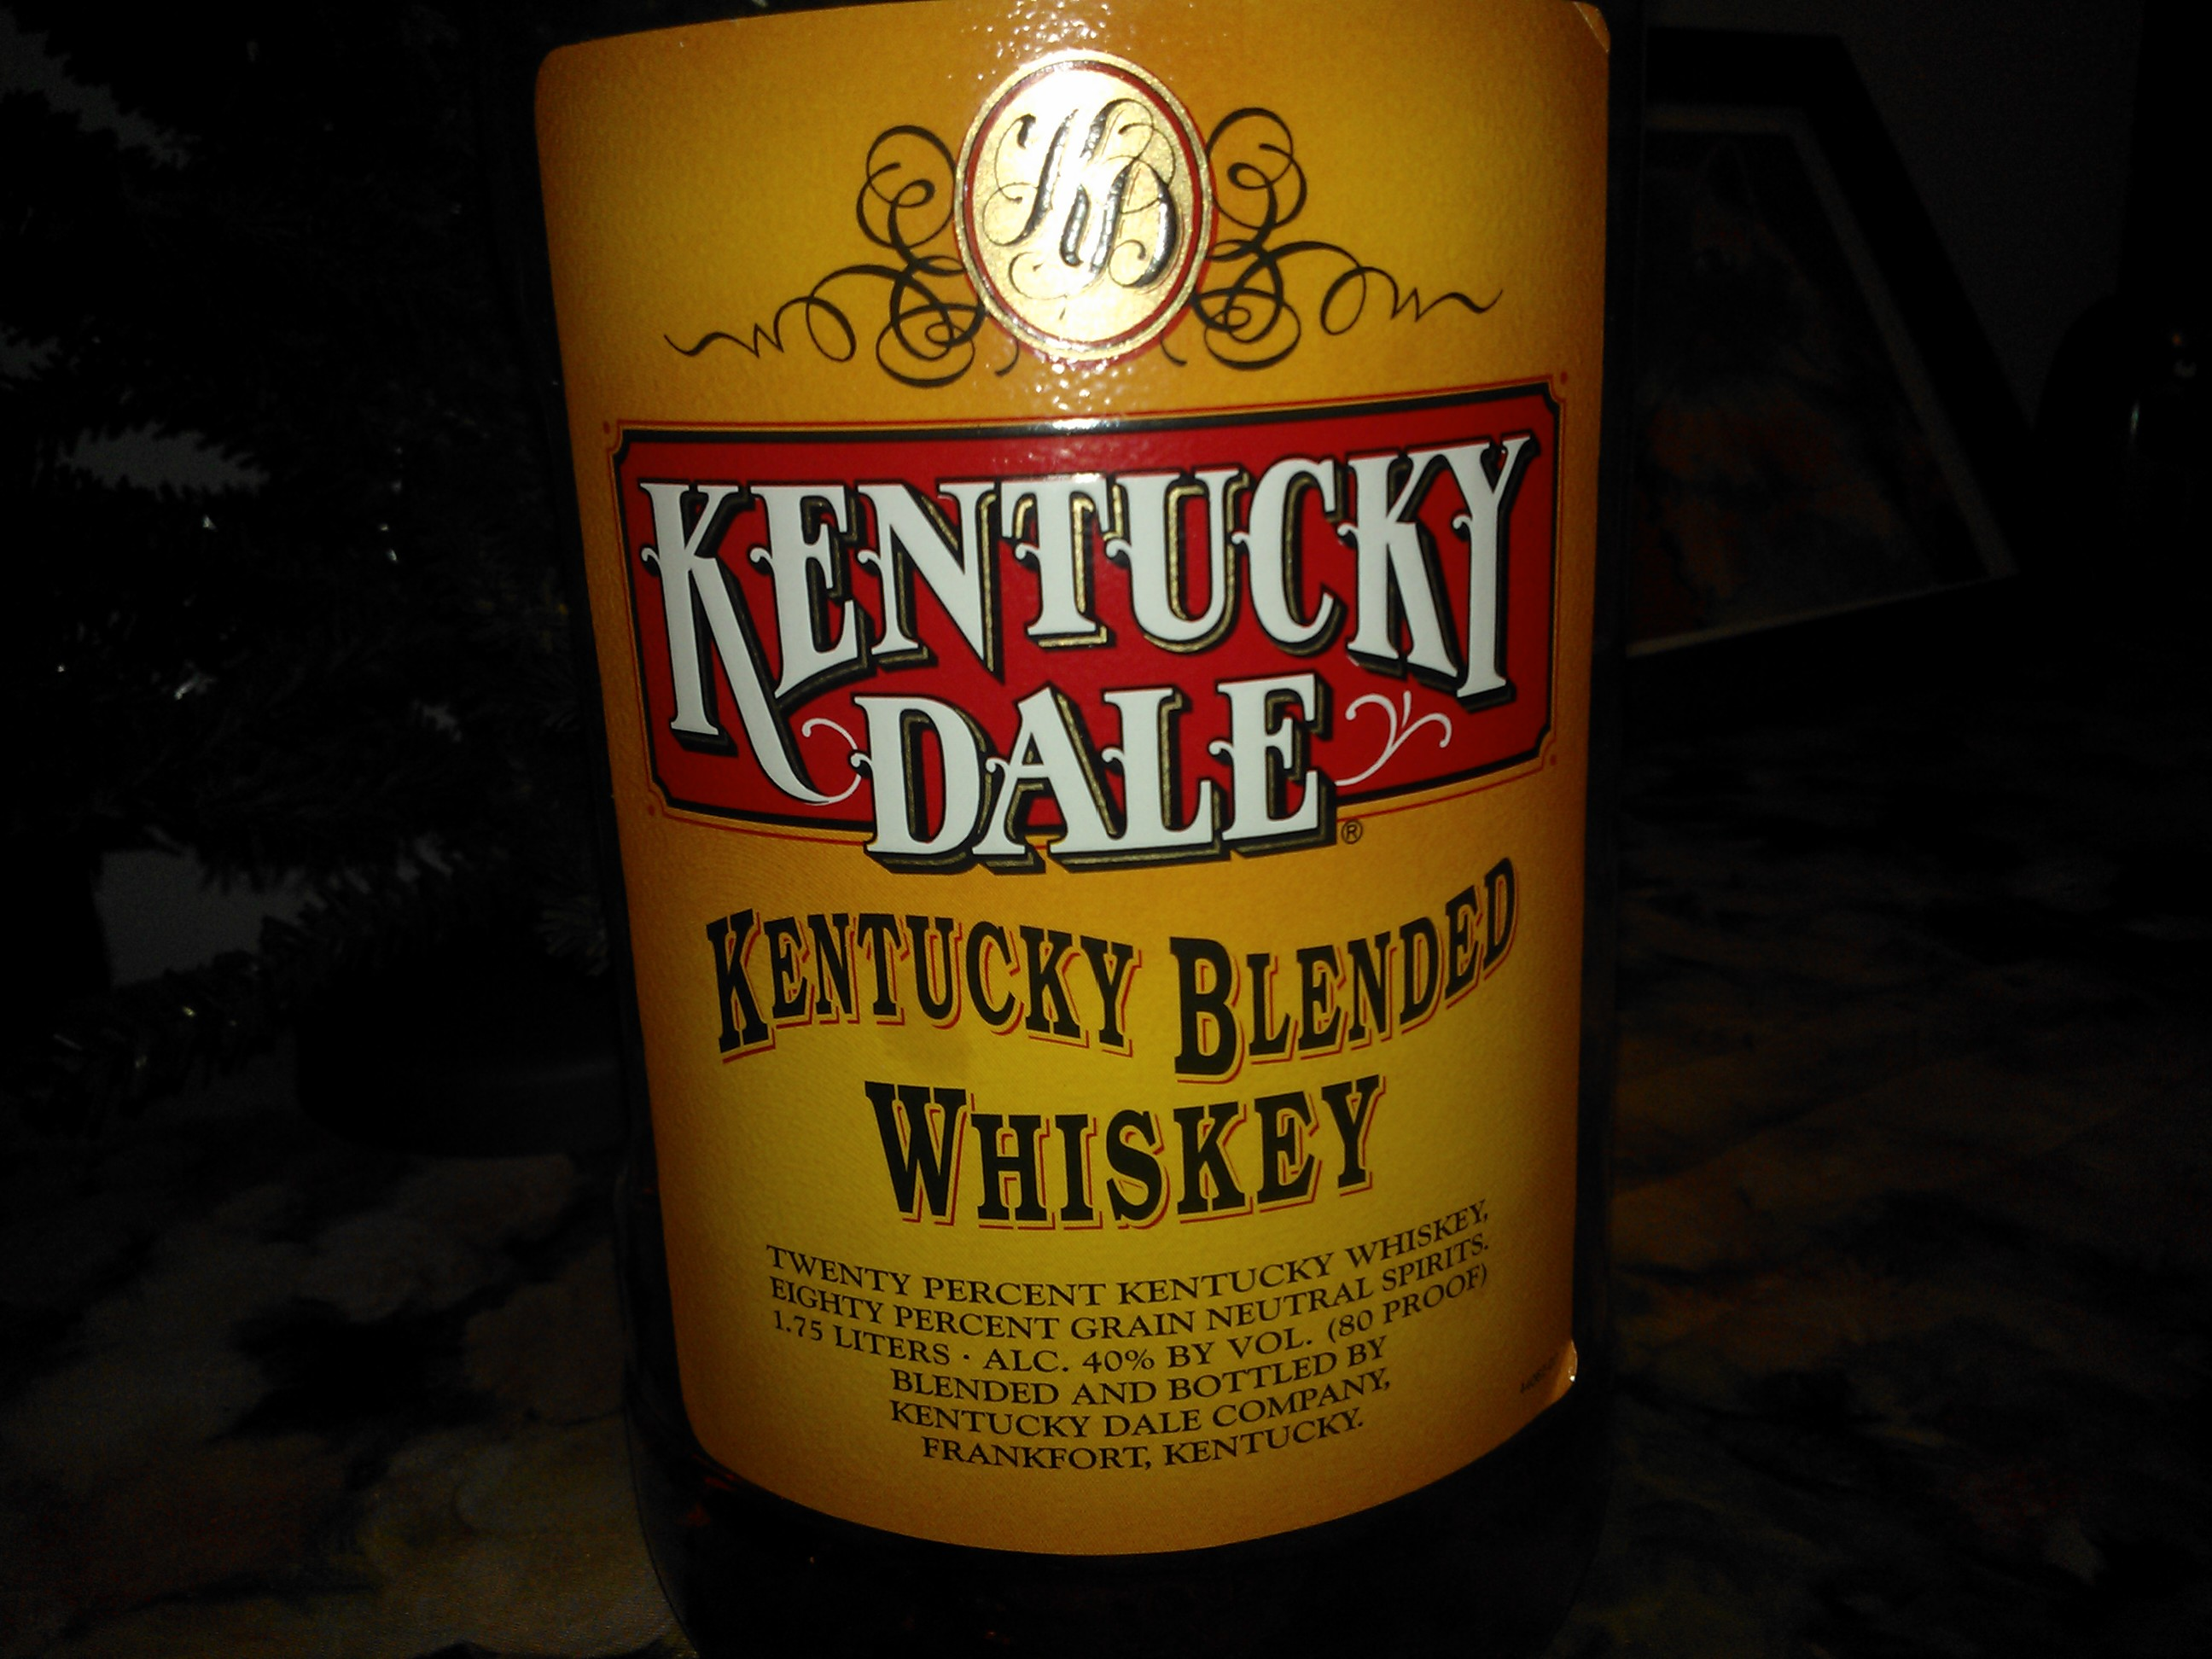 Kentucky Dale Label Information by Erik Bergs